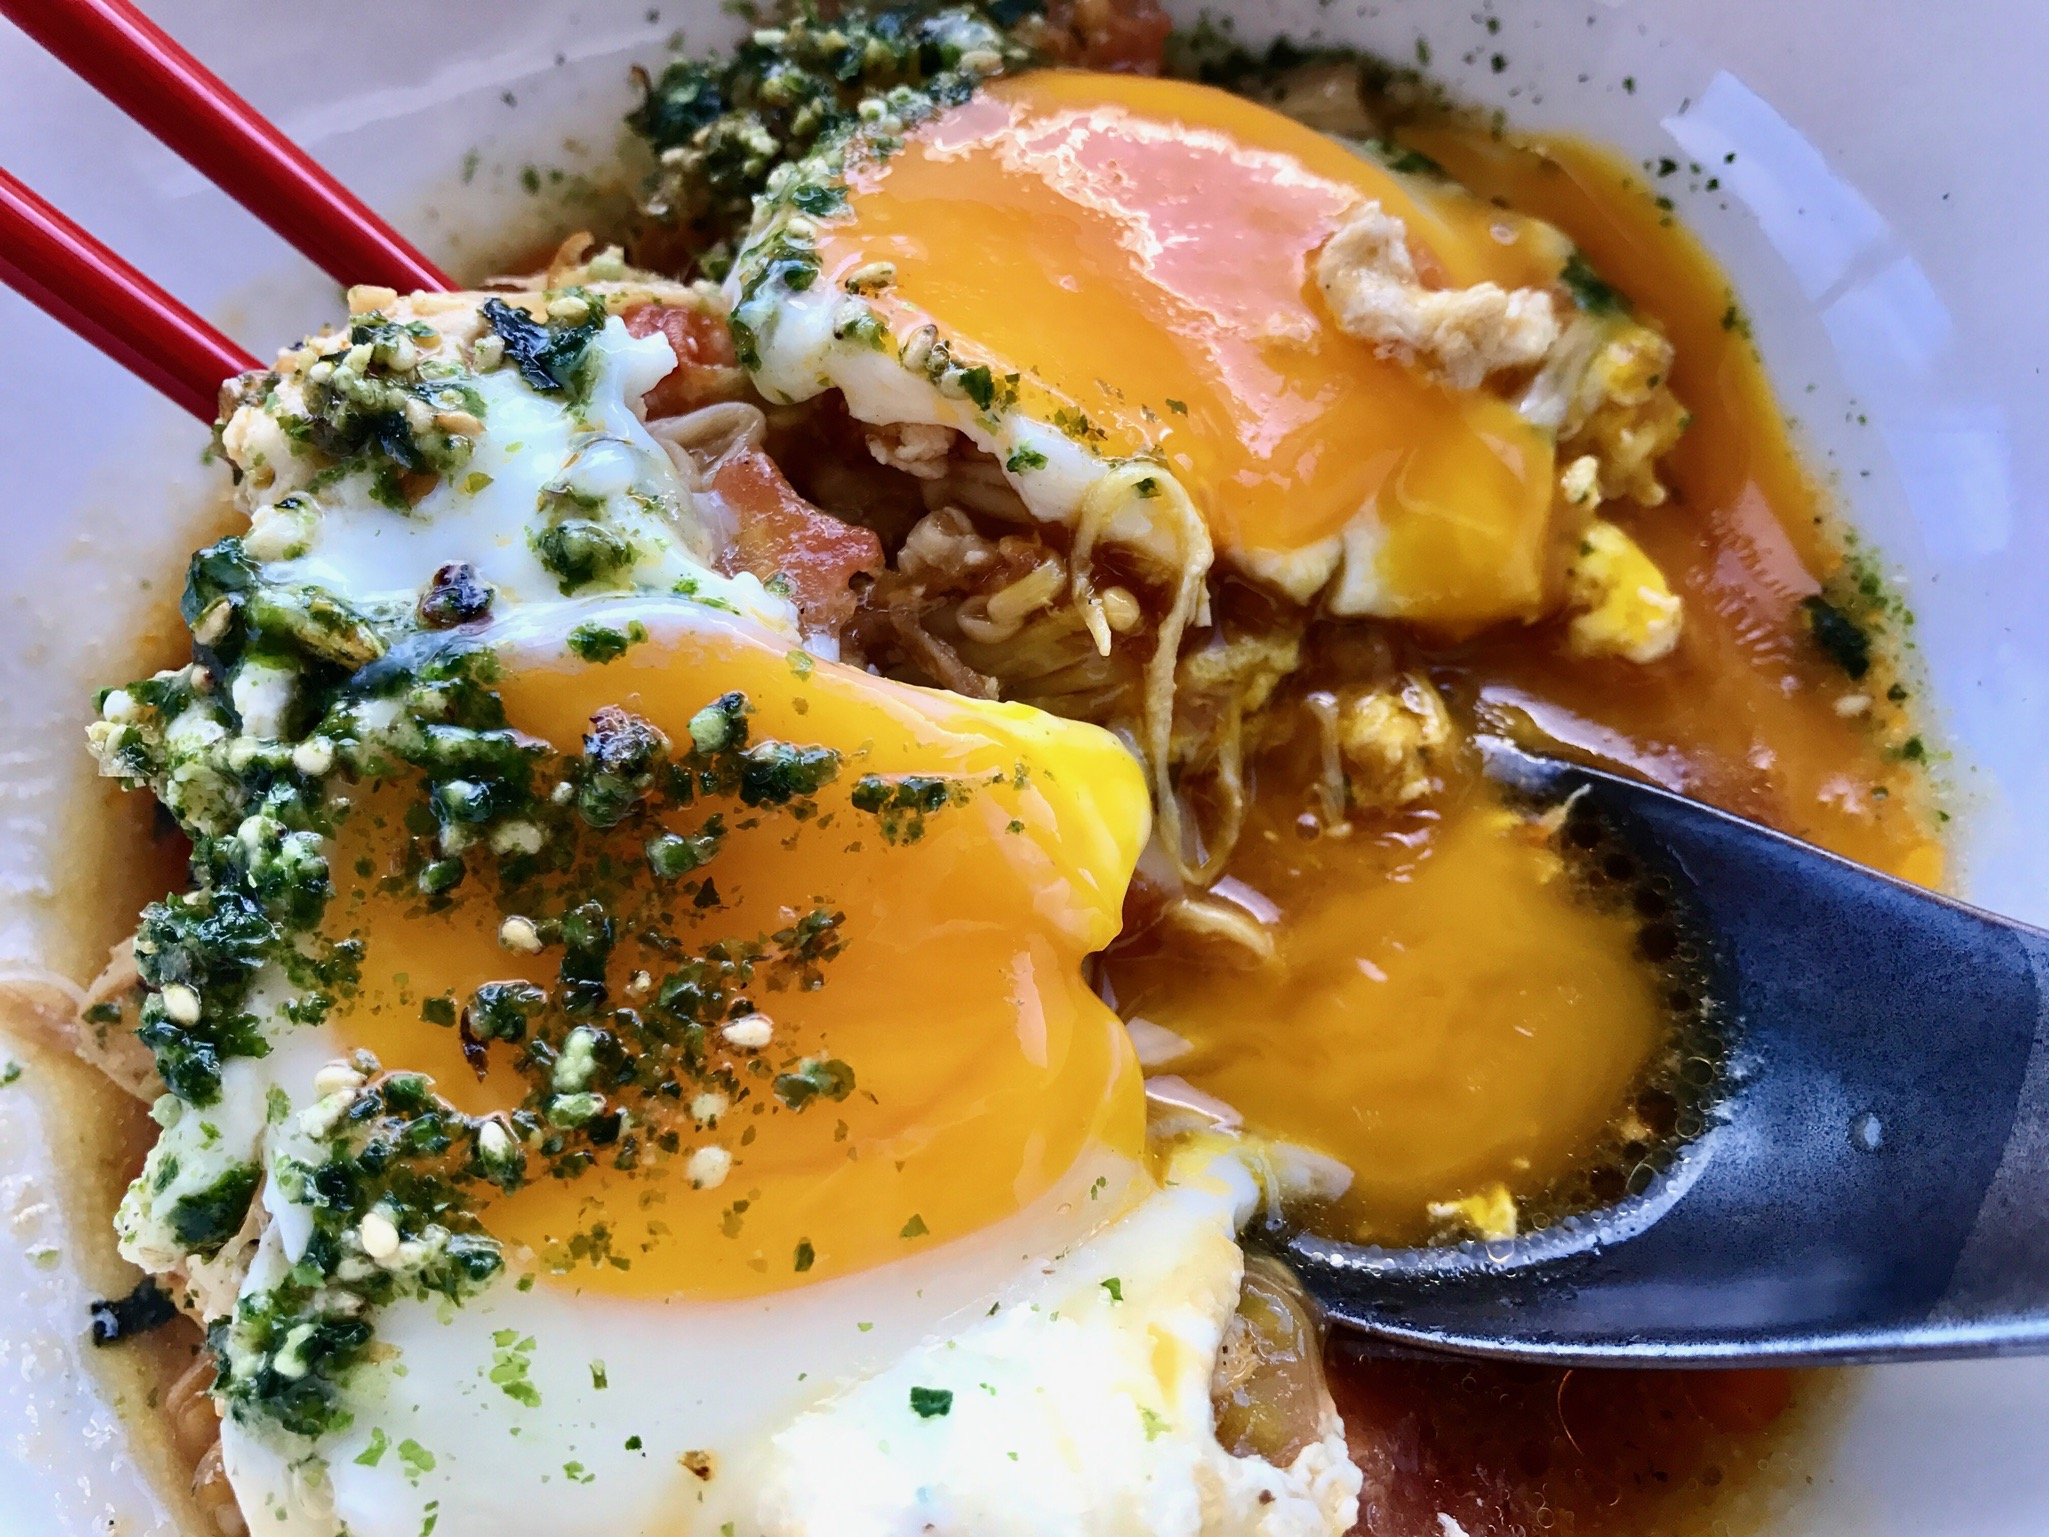 Beautiful yolks running into that delicious broth